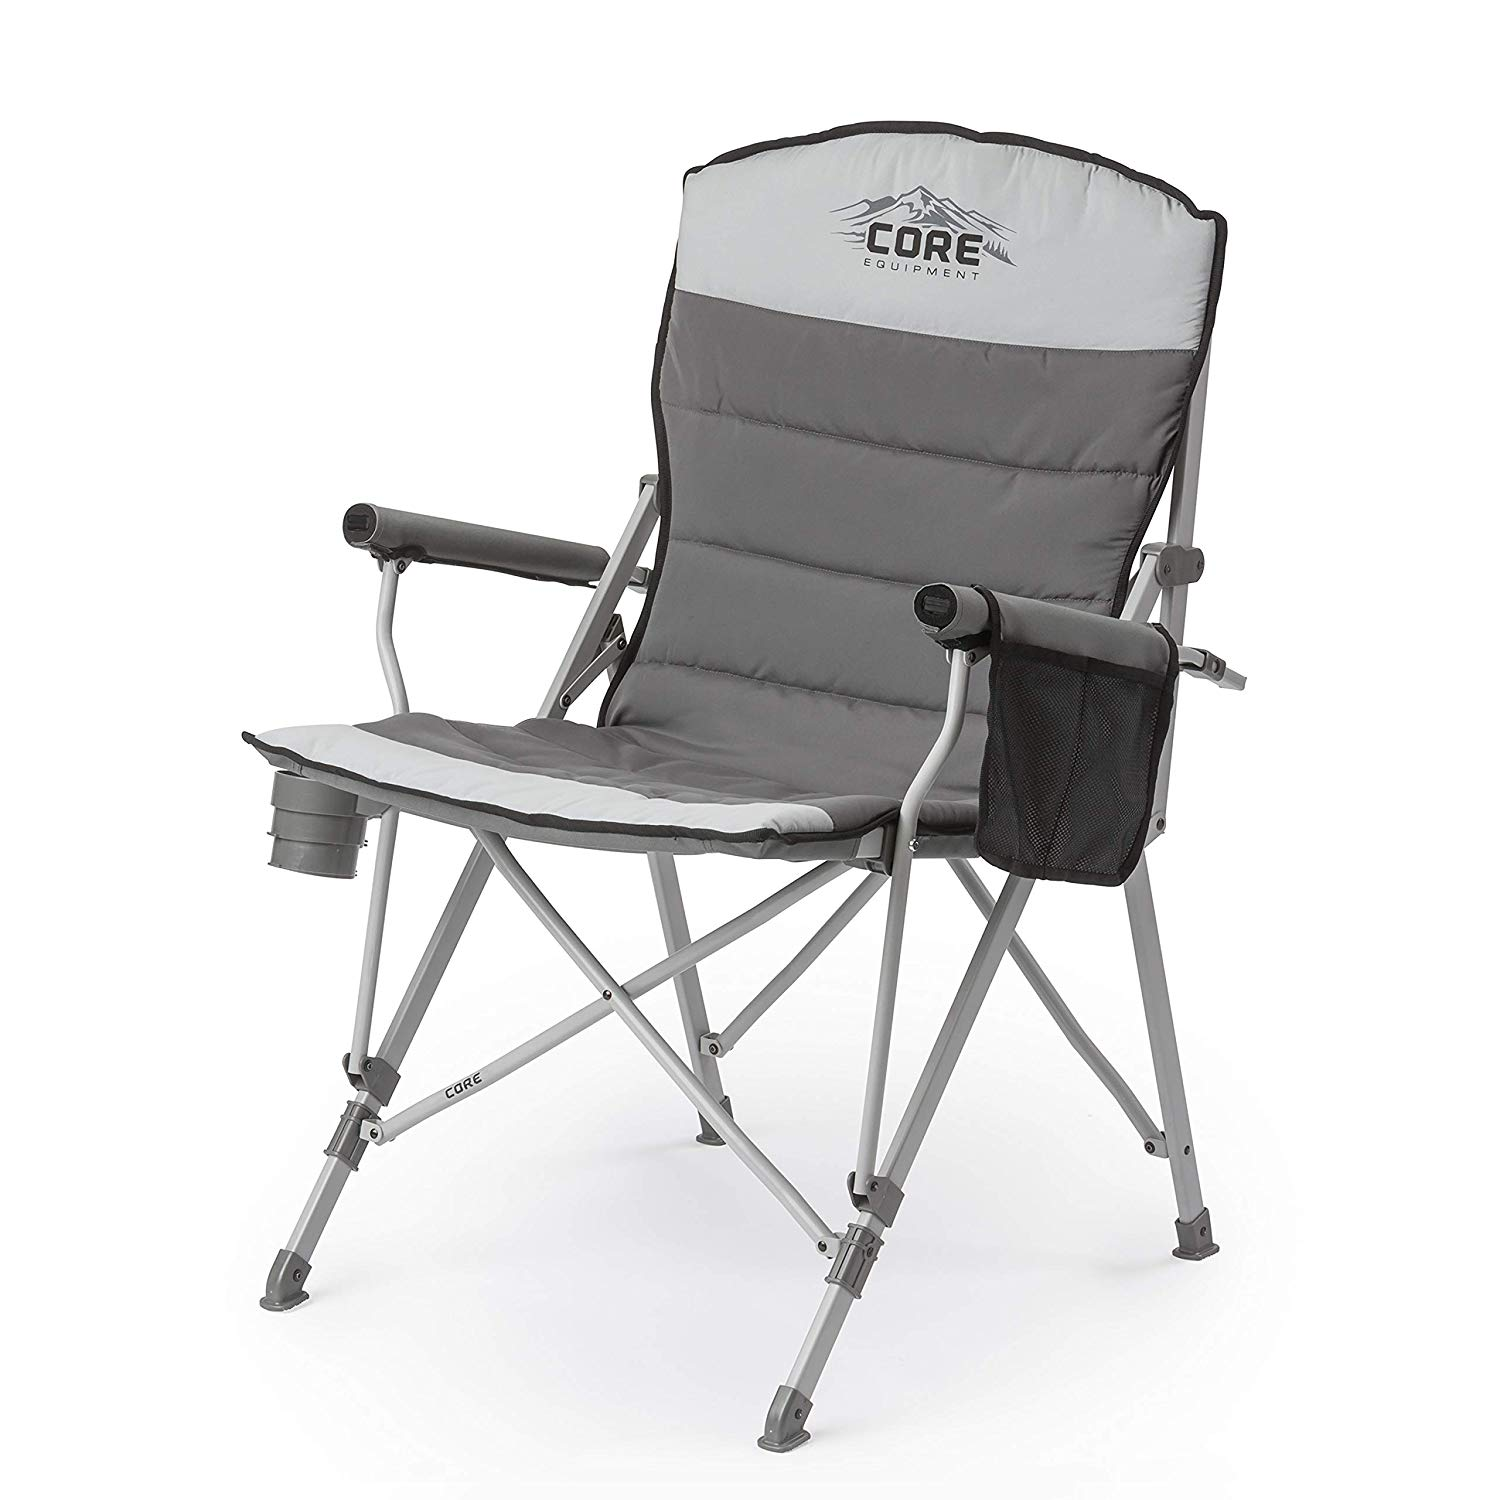 Top 10 Best Camping Chair For Bad Back 2021 Reviews 4